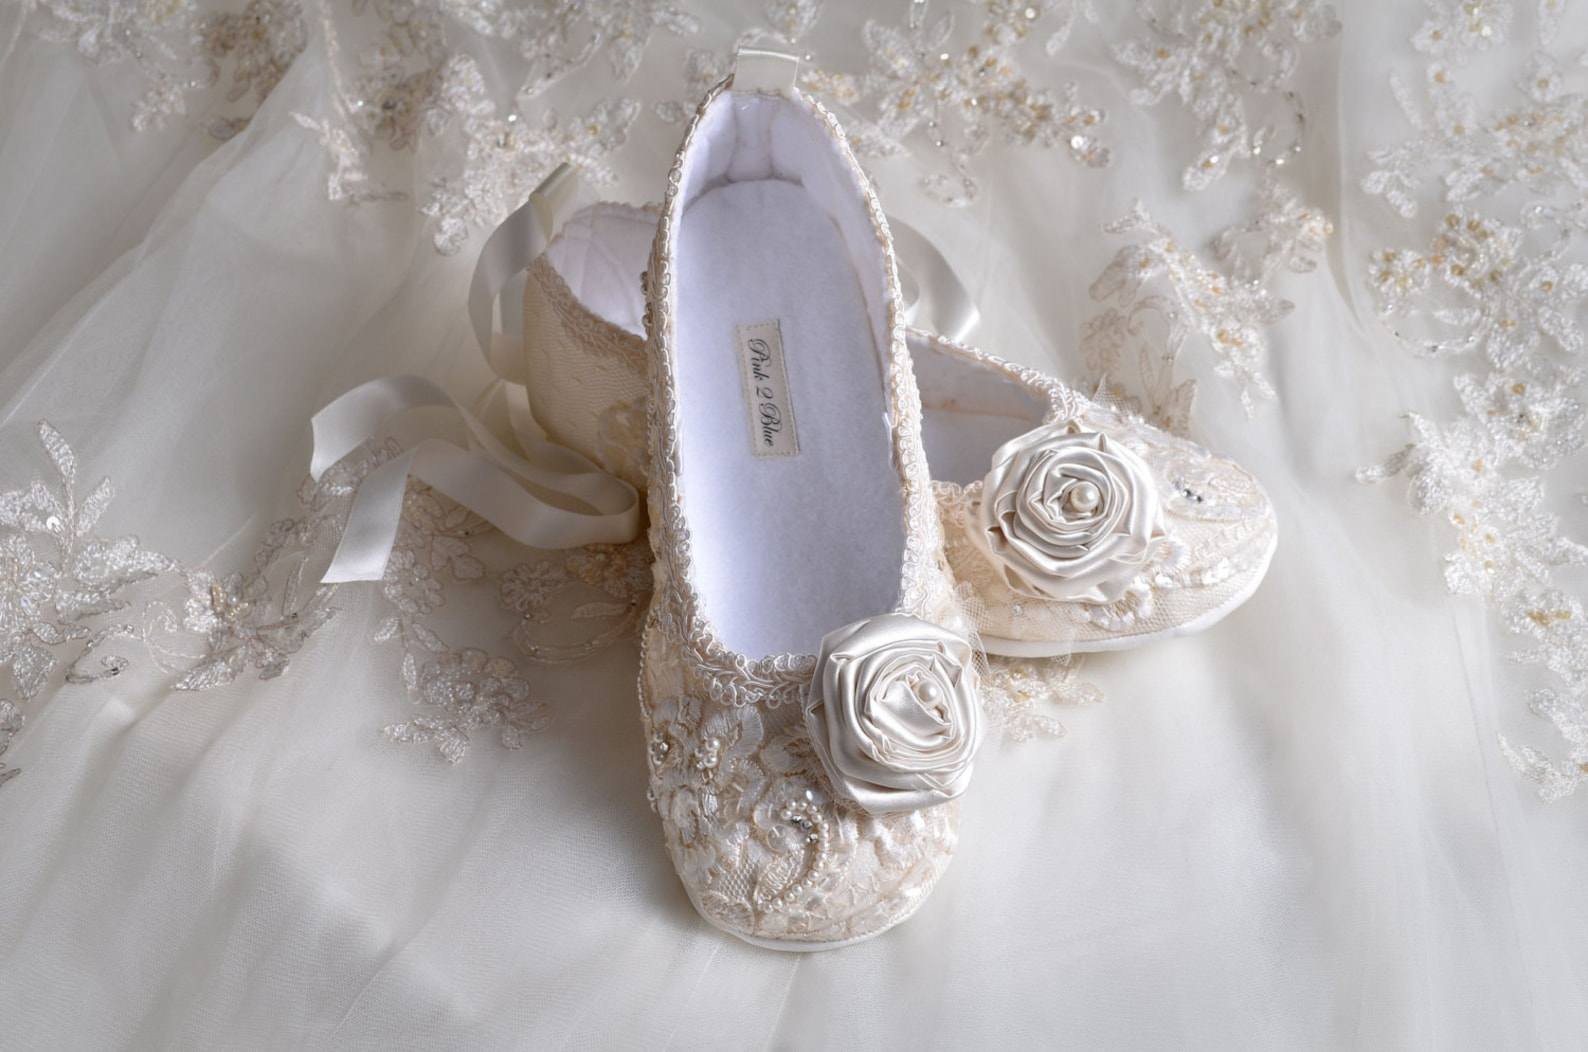 lace ballet wedding shoes, handmade wedding flats, wedding bridal ballet shoes,wedding slippers,shoes crystals and pearls, weddi